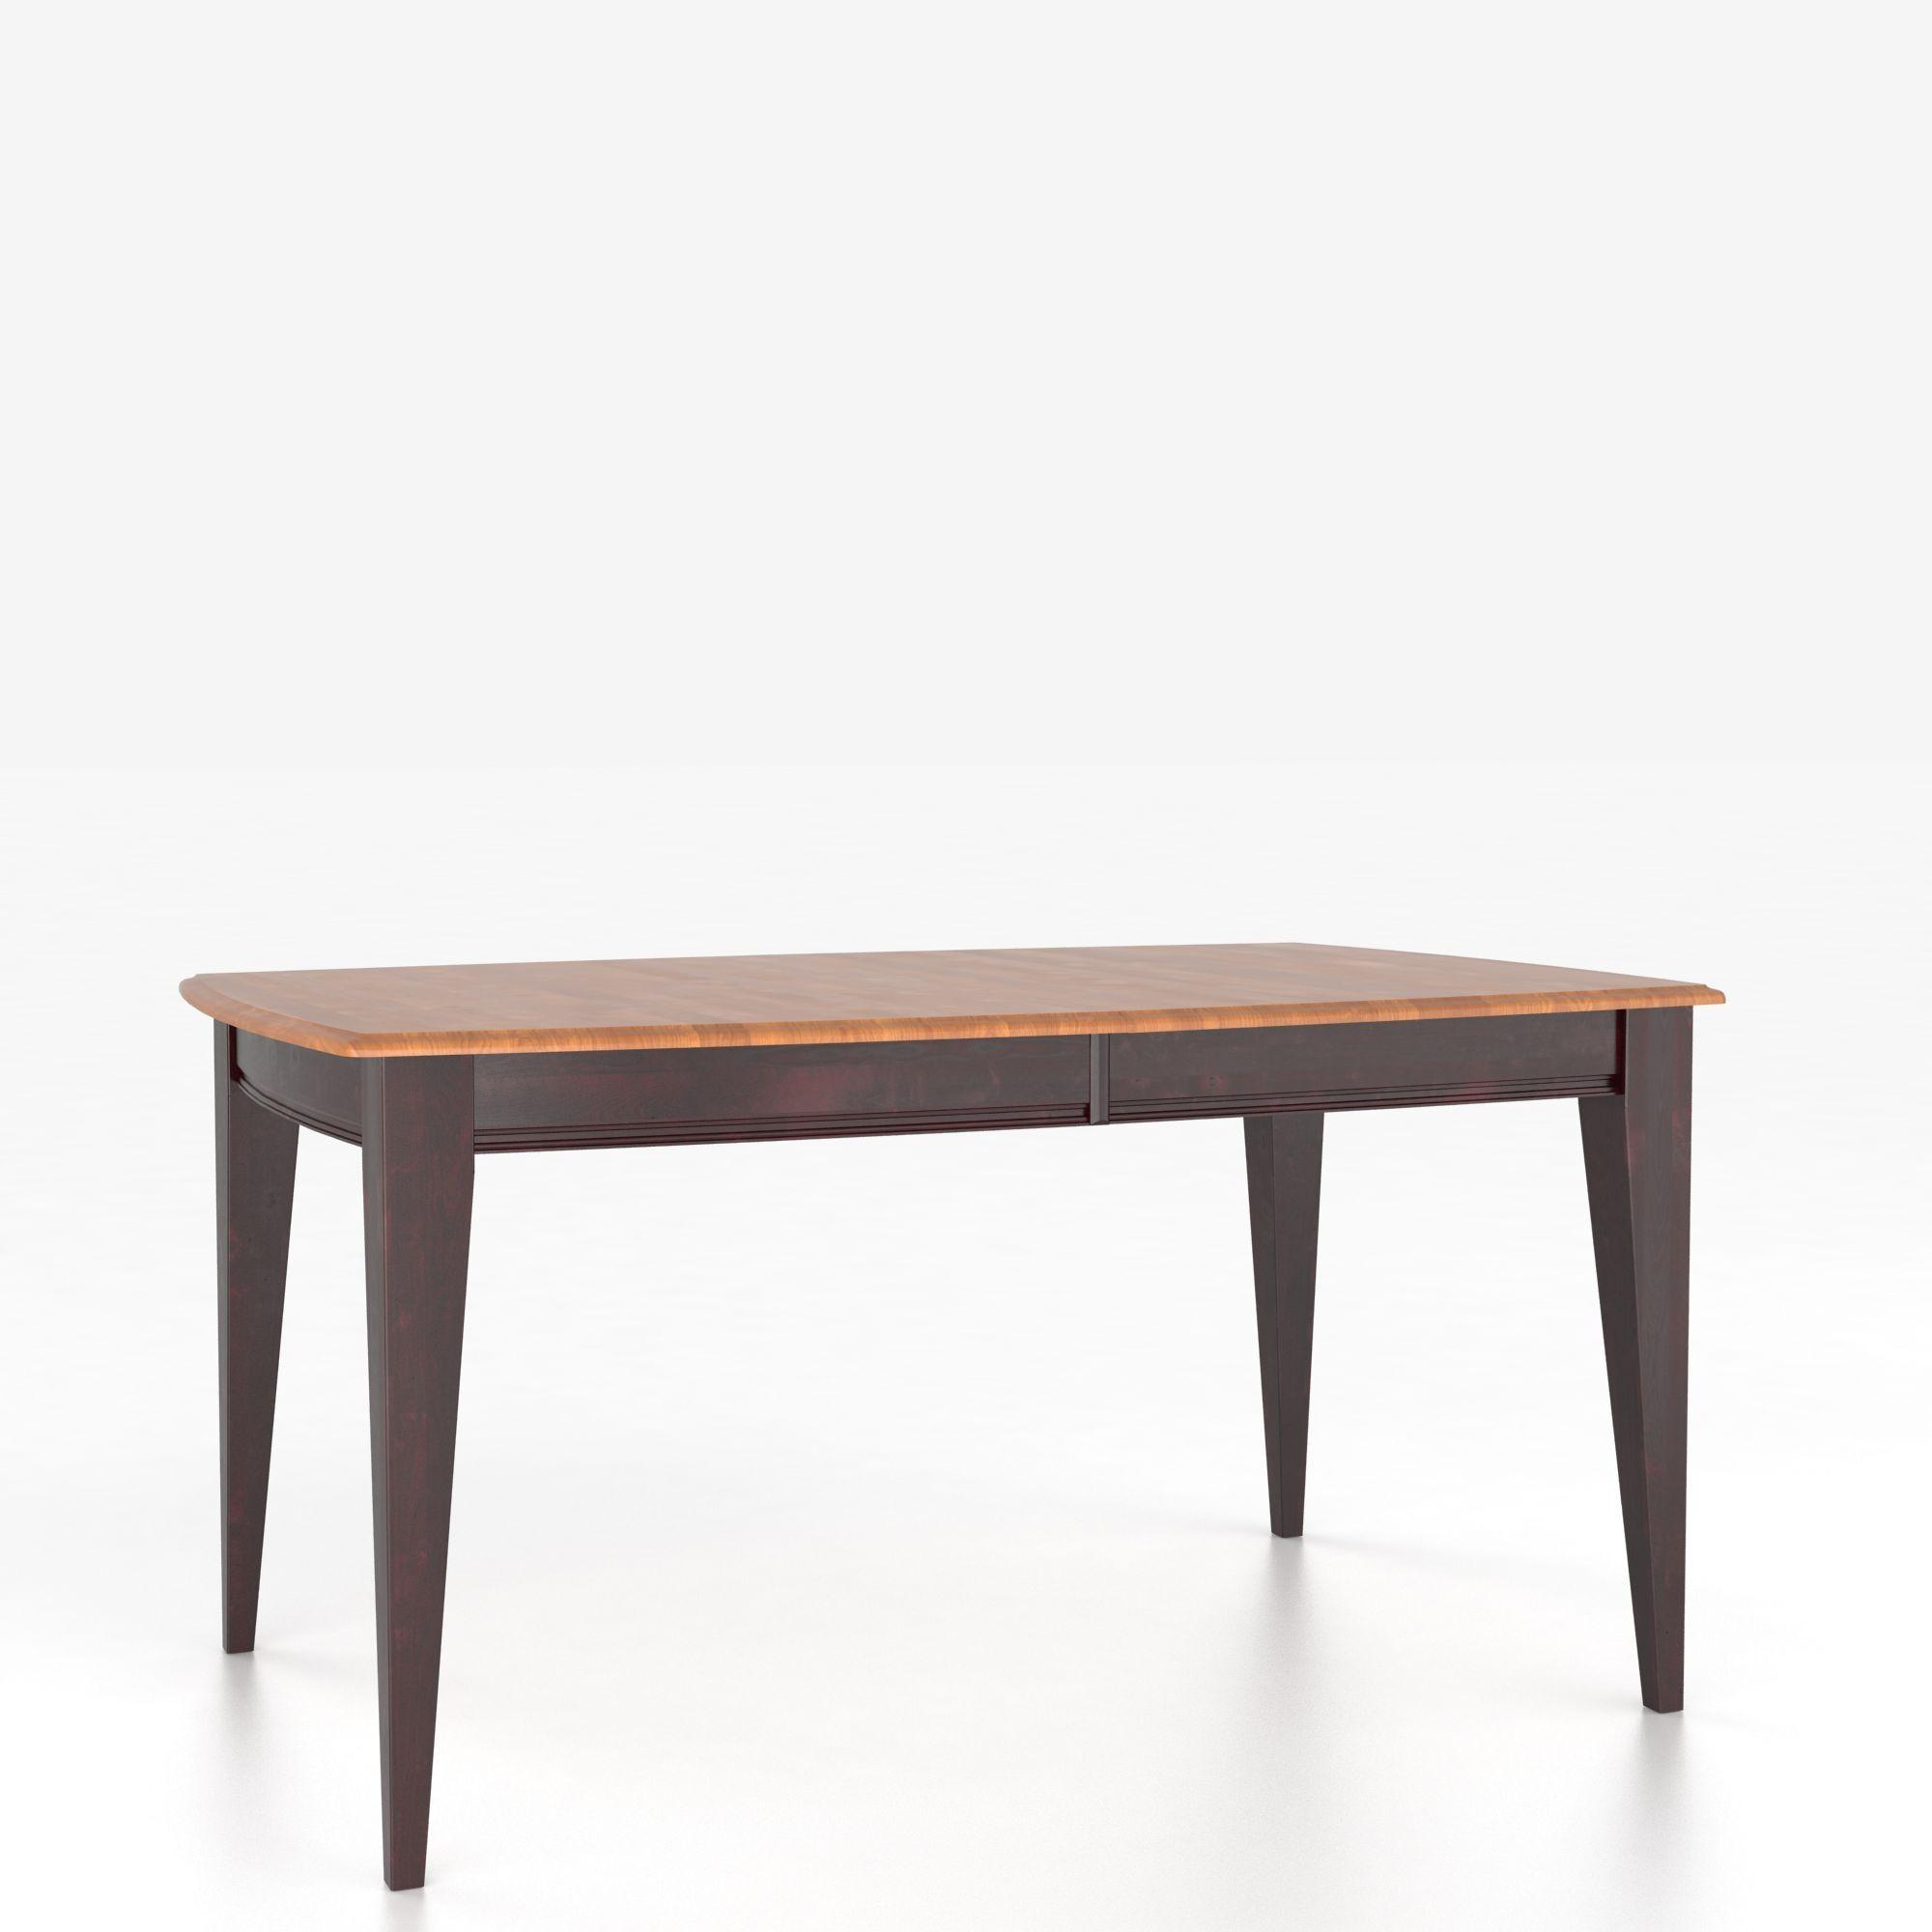 Custom Dining Tables <b>Customizable</b> Boat Shape Table w/ Legs by Canadel at Dinette Depot